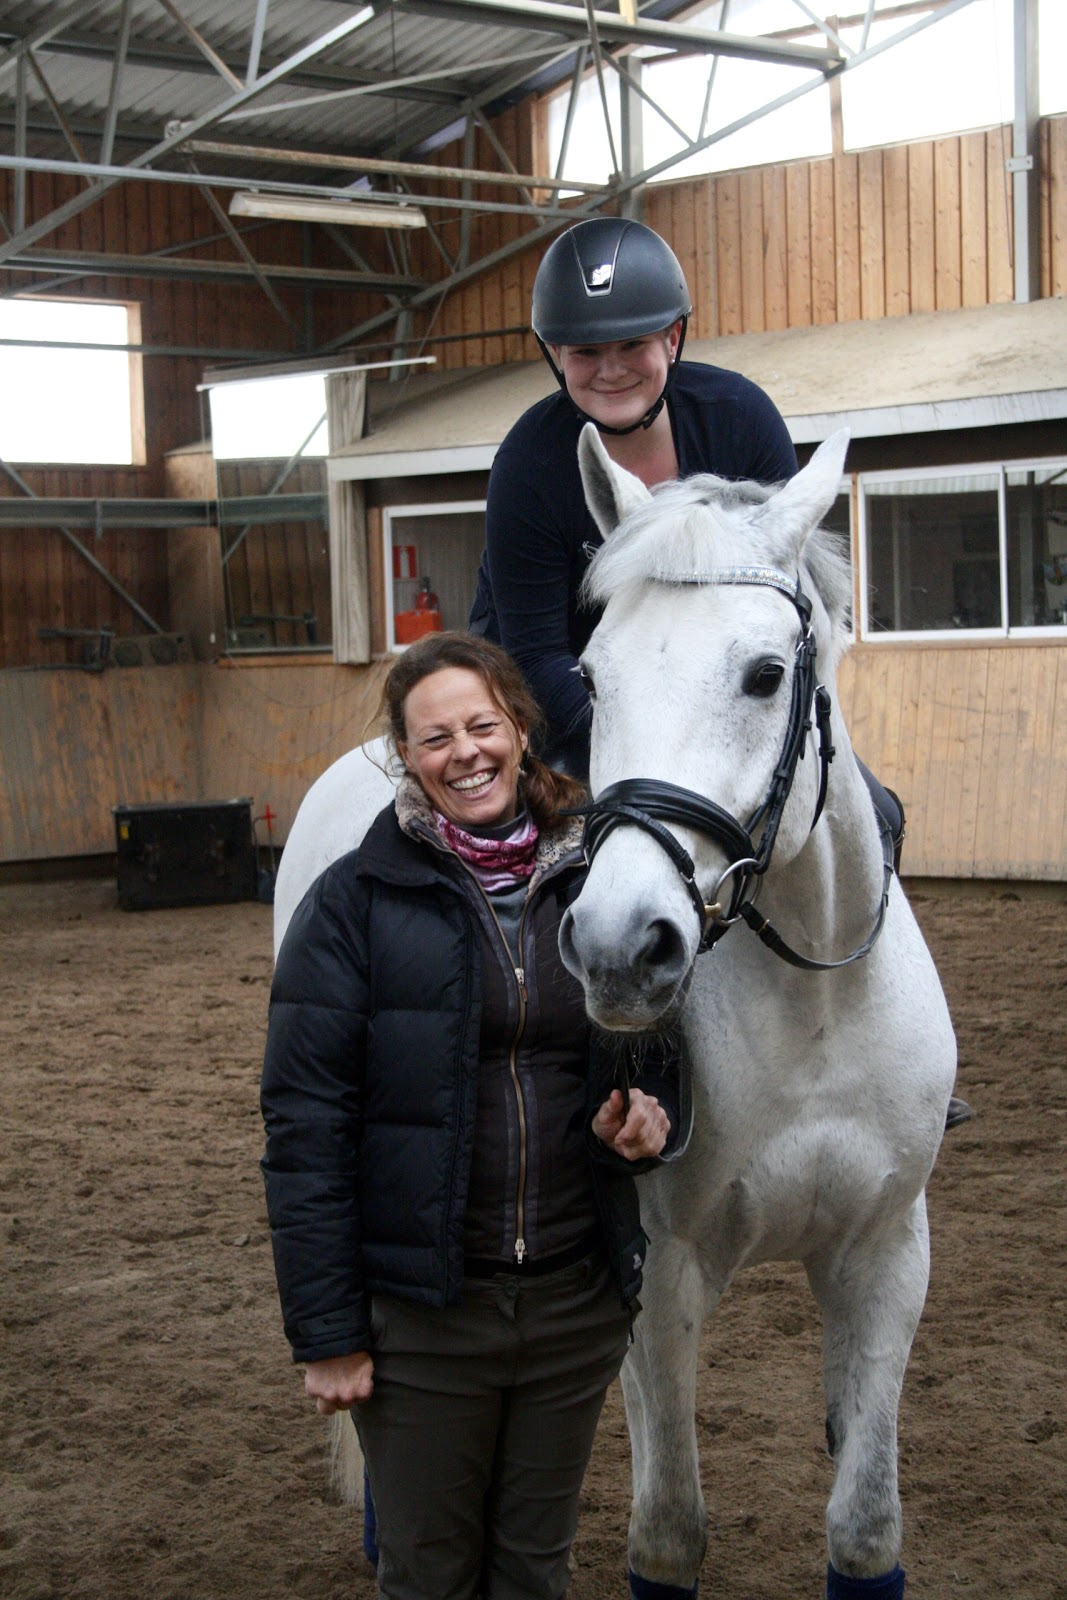 Dressage training with Jane Cannon: be more authentic as a rider